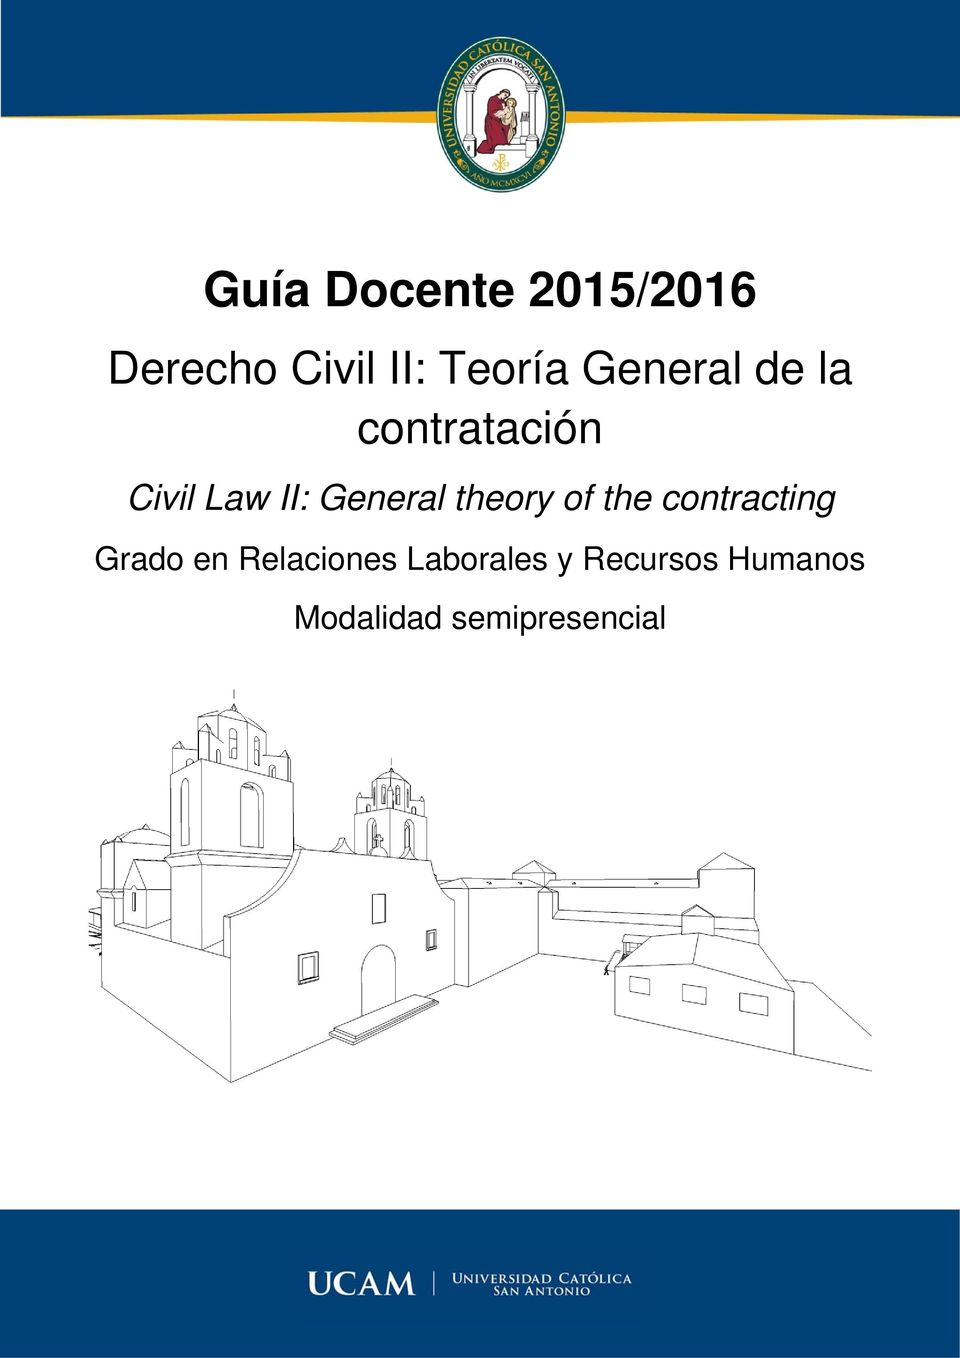 theory of the contracting Grado en Relaciones